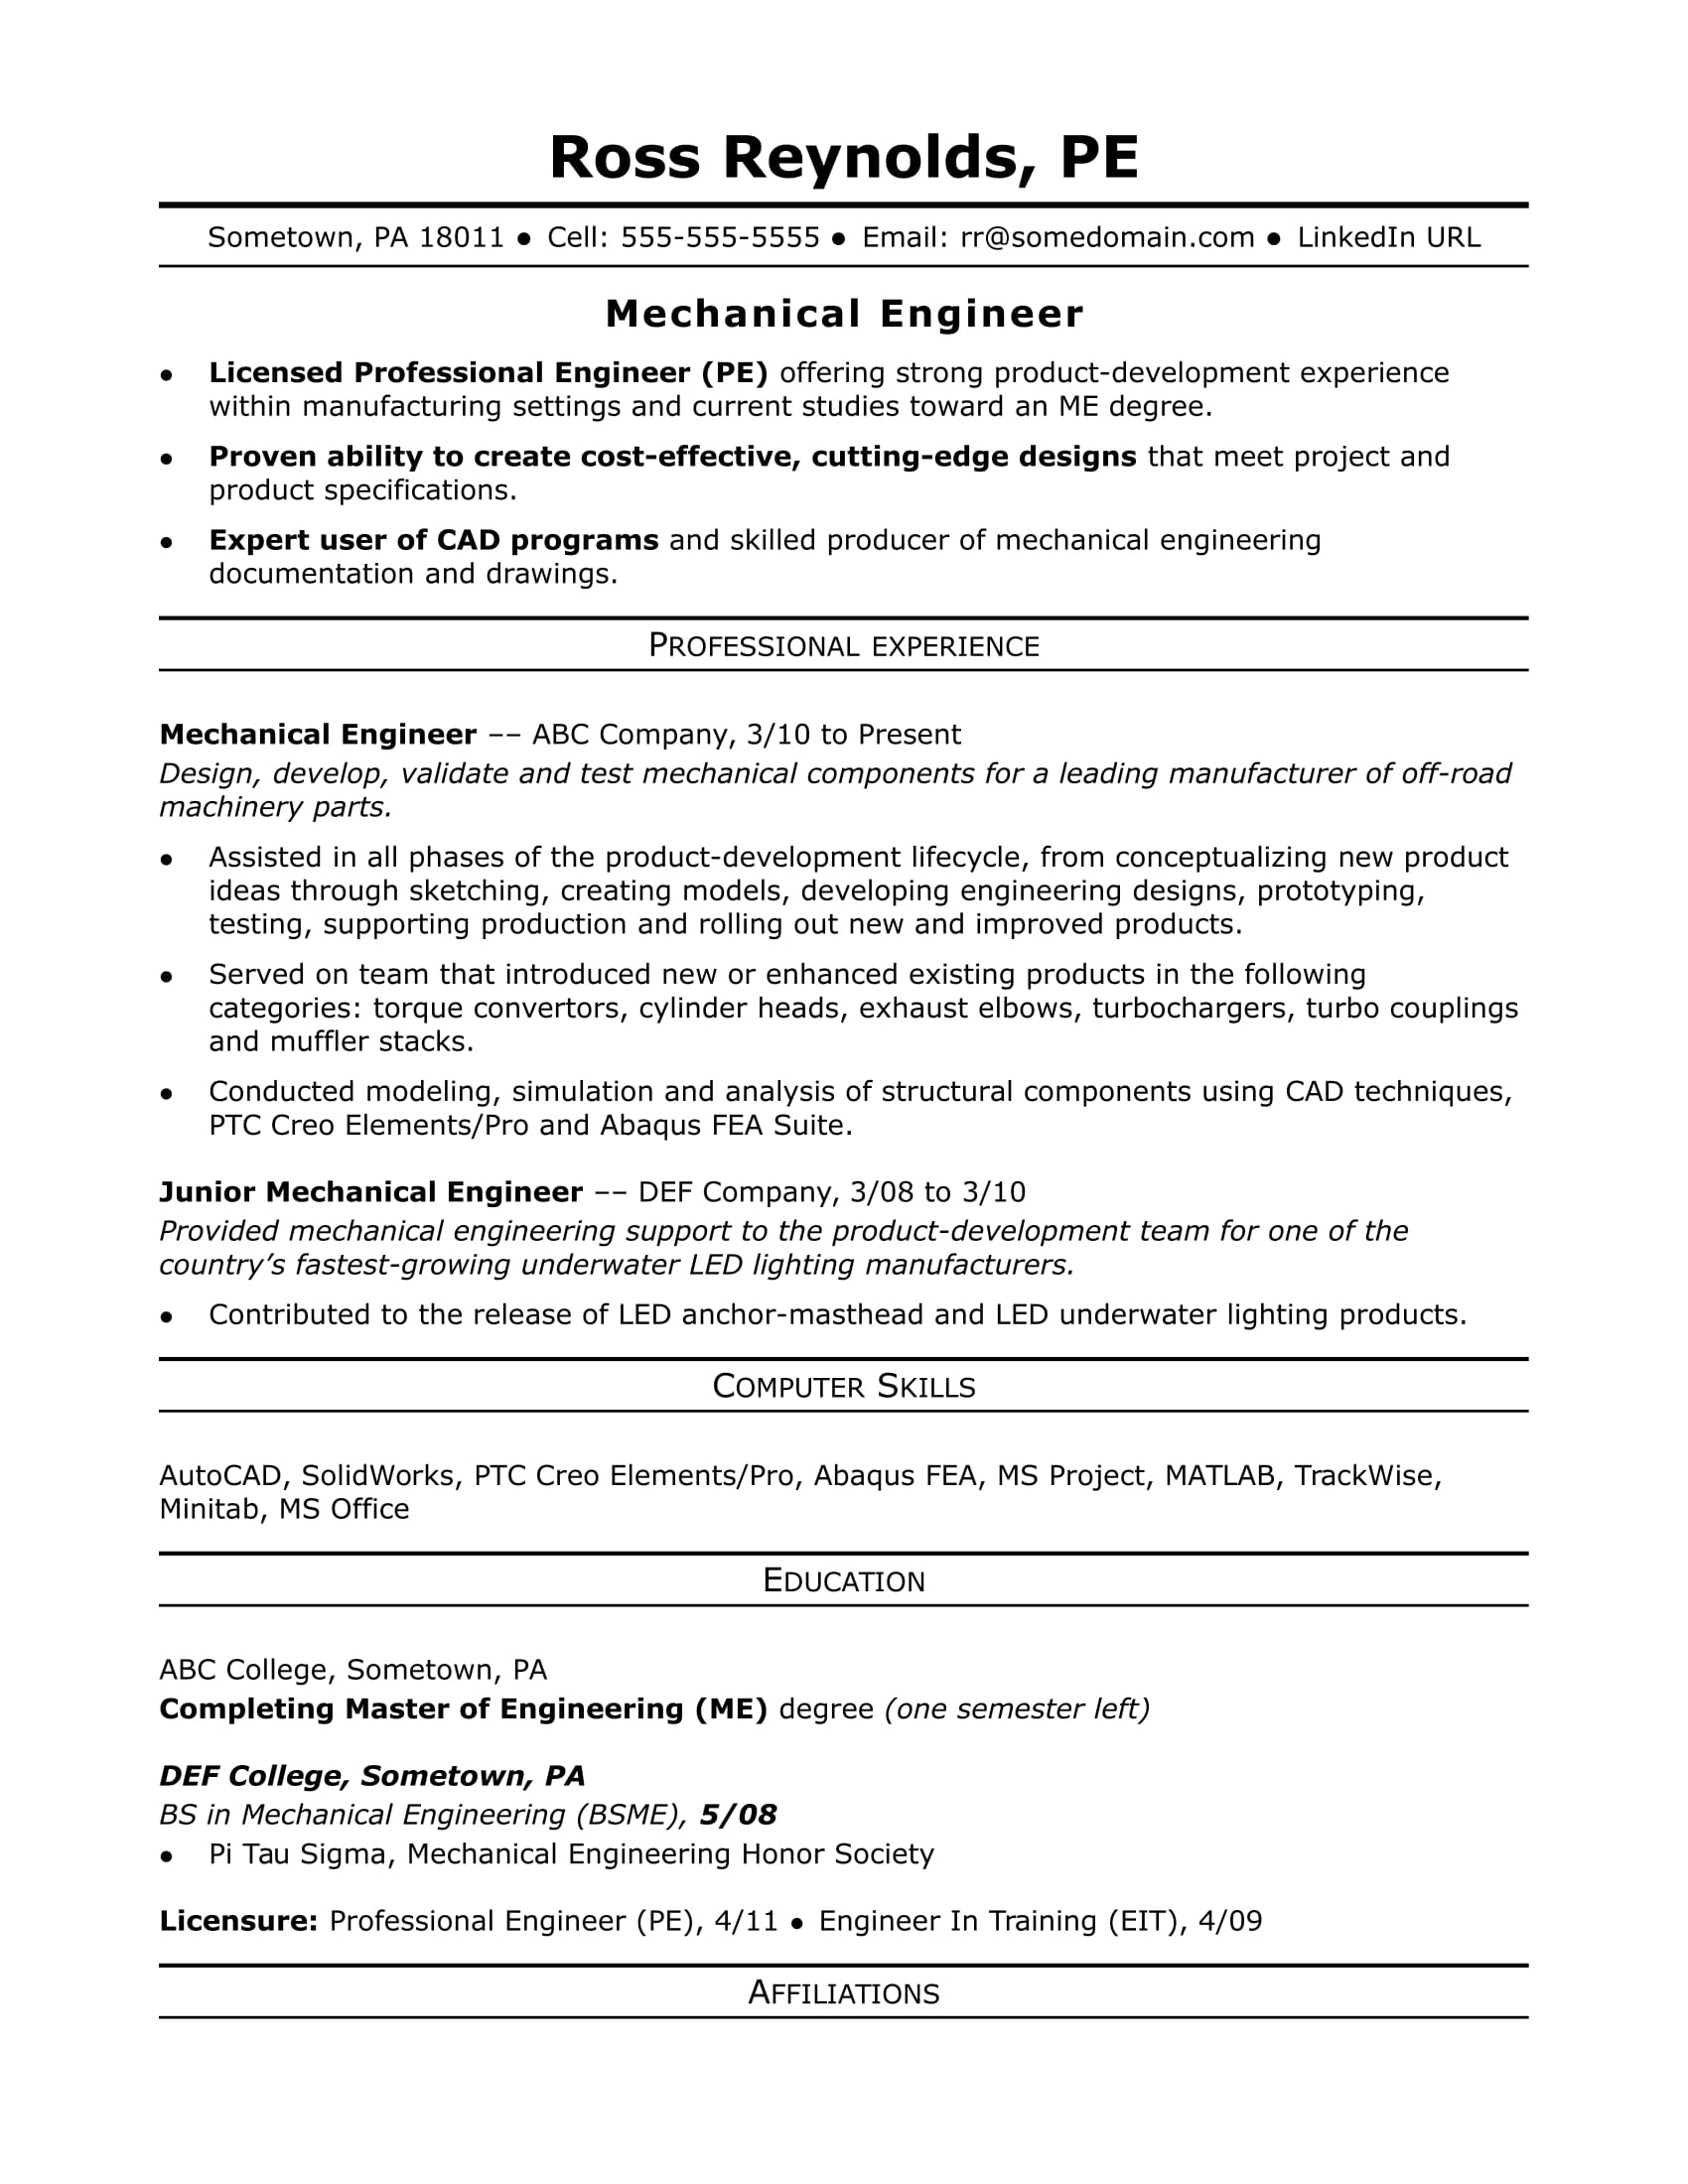 Mechanical Engineering Skills For Resume